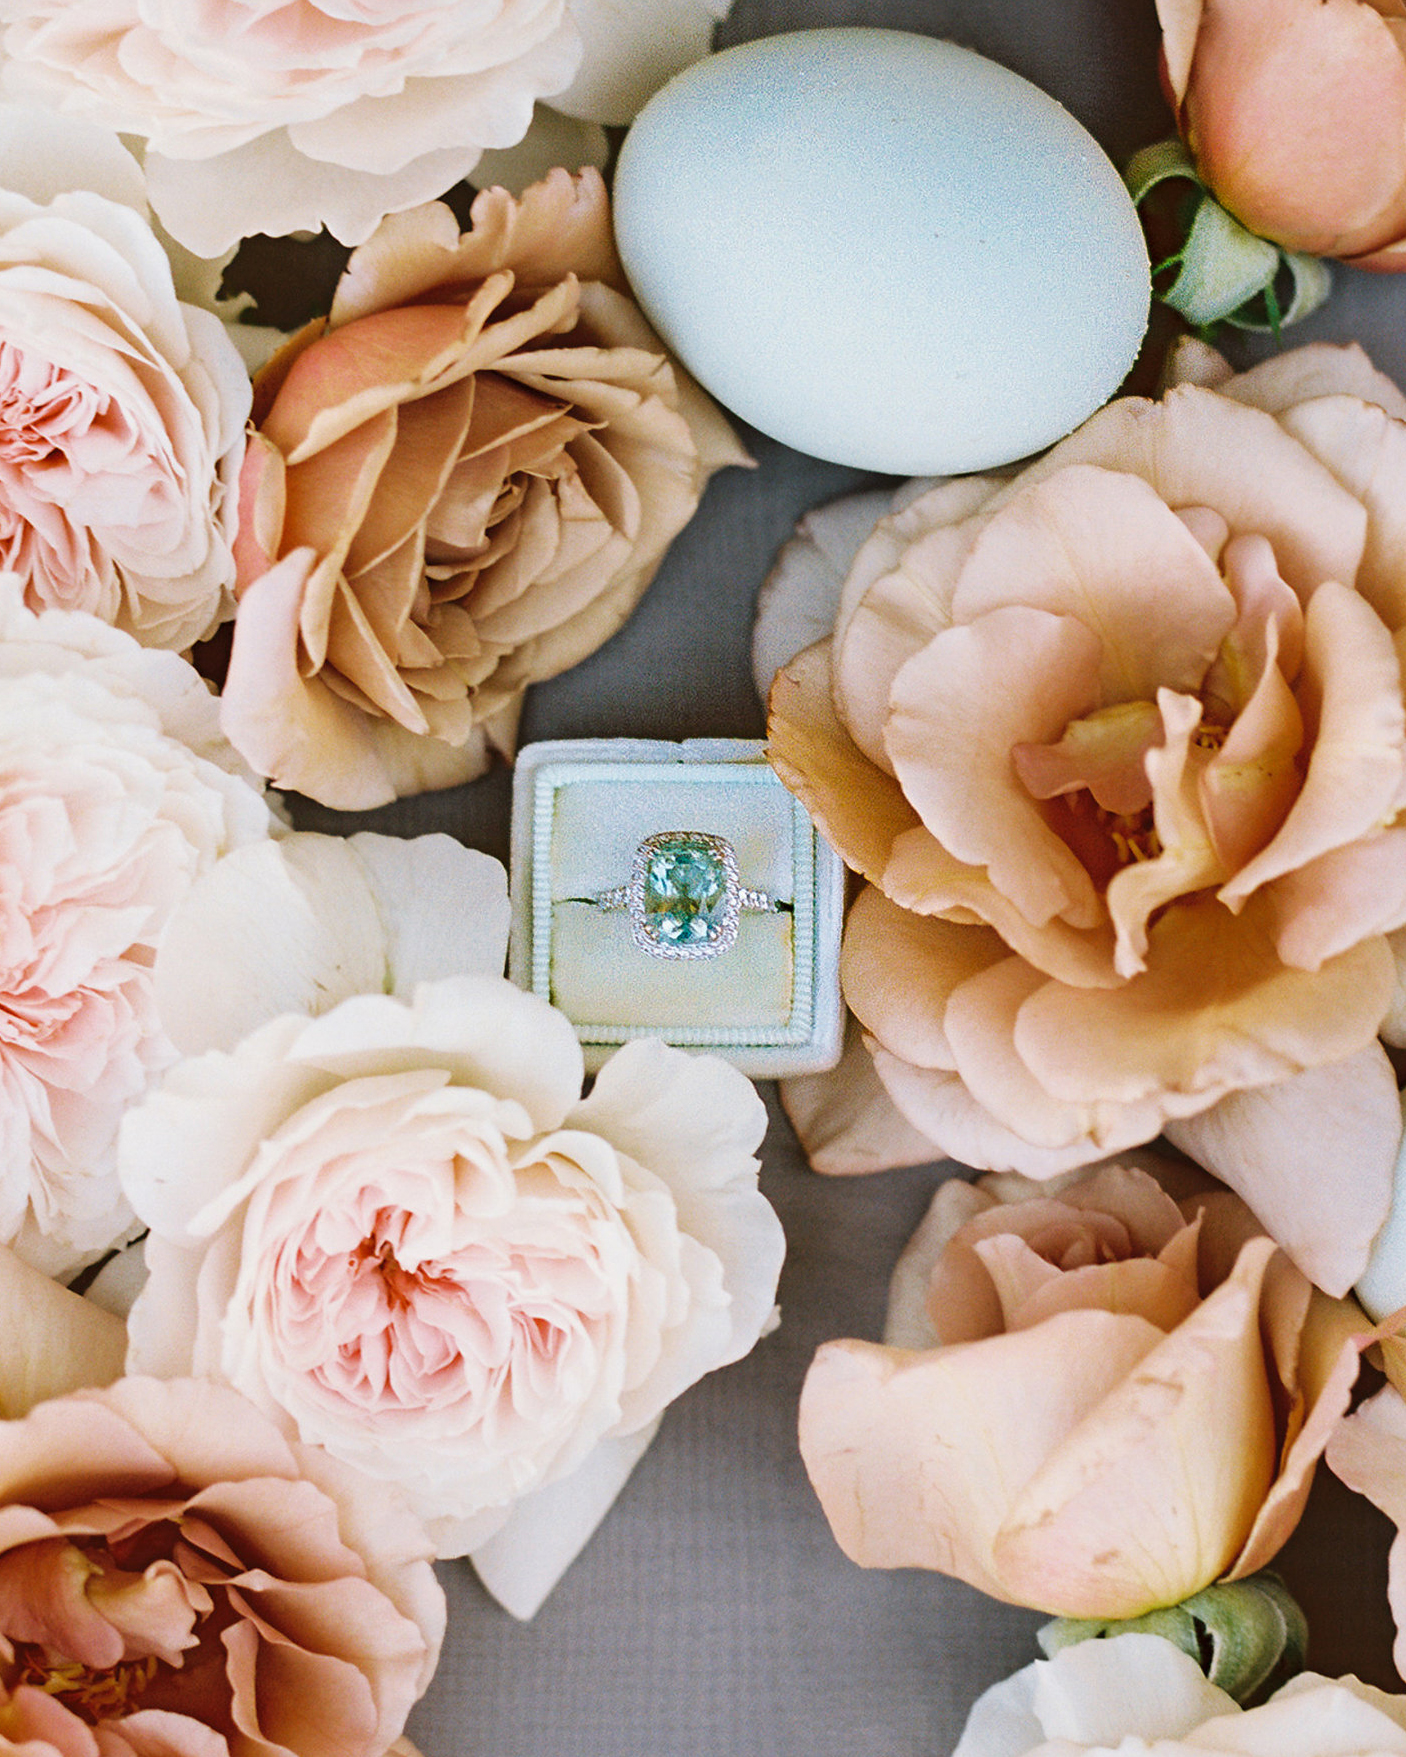 surprise wedding engagement ring surrounded by flowers egg